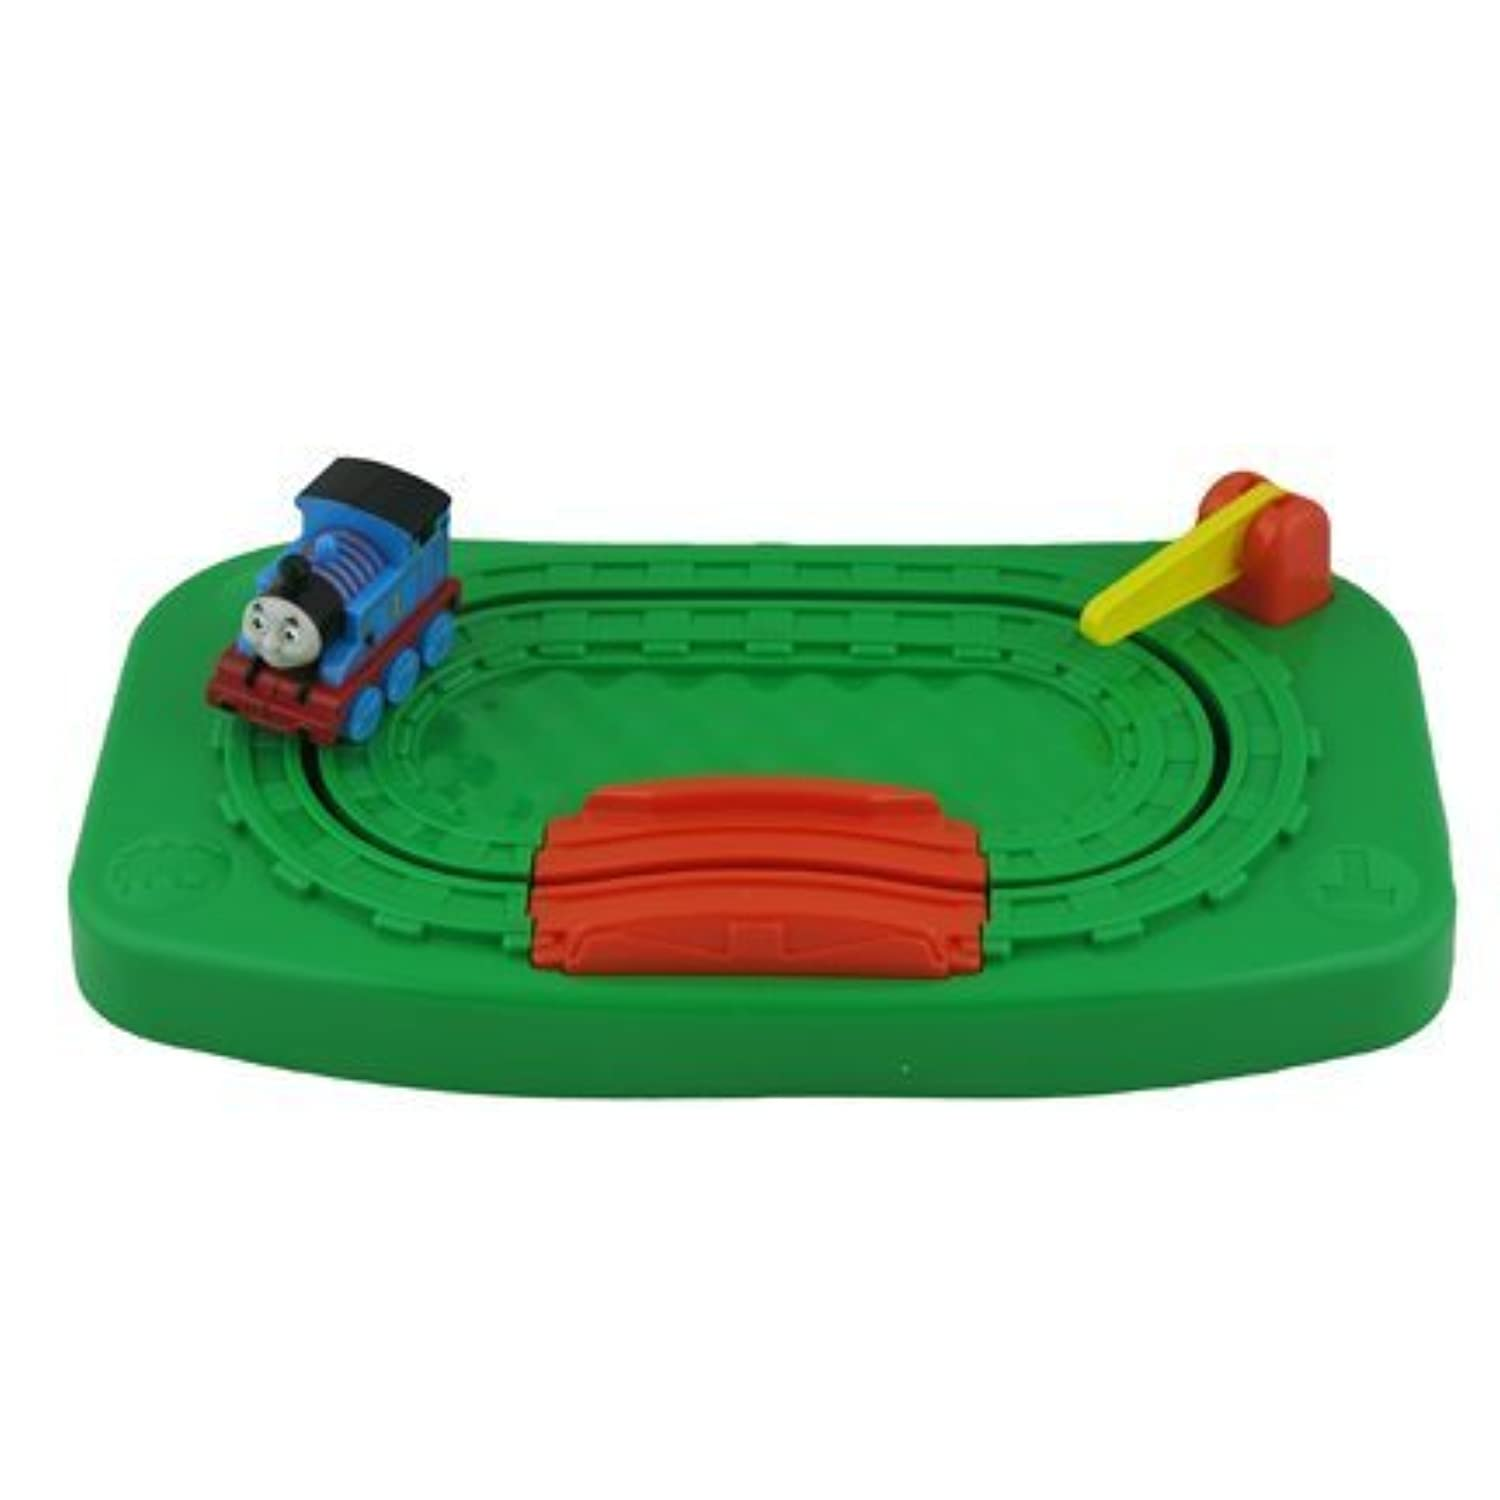 Fisher-Price Thomas & Friends Booster Seat - Replacement Play Tray by Fisher-Price